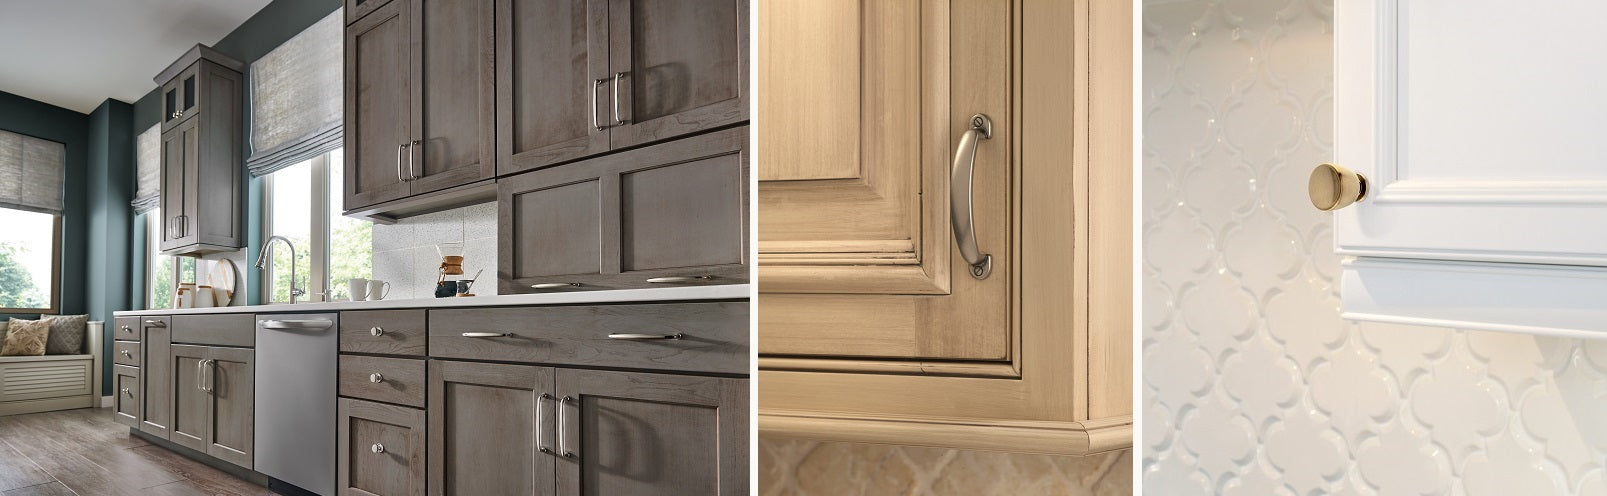 Placement for Cabinet Hardware